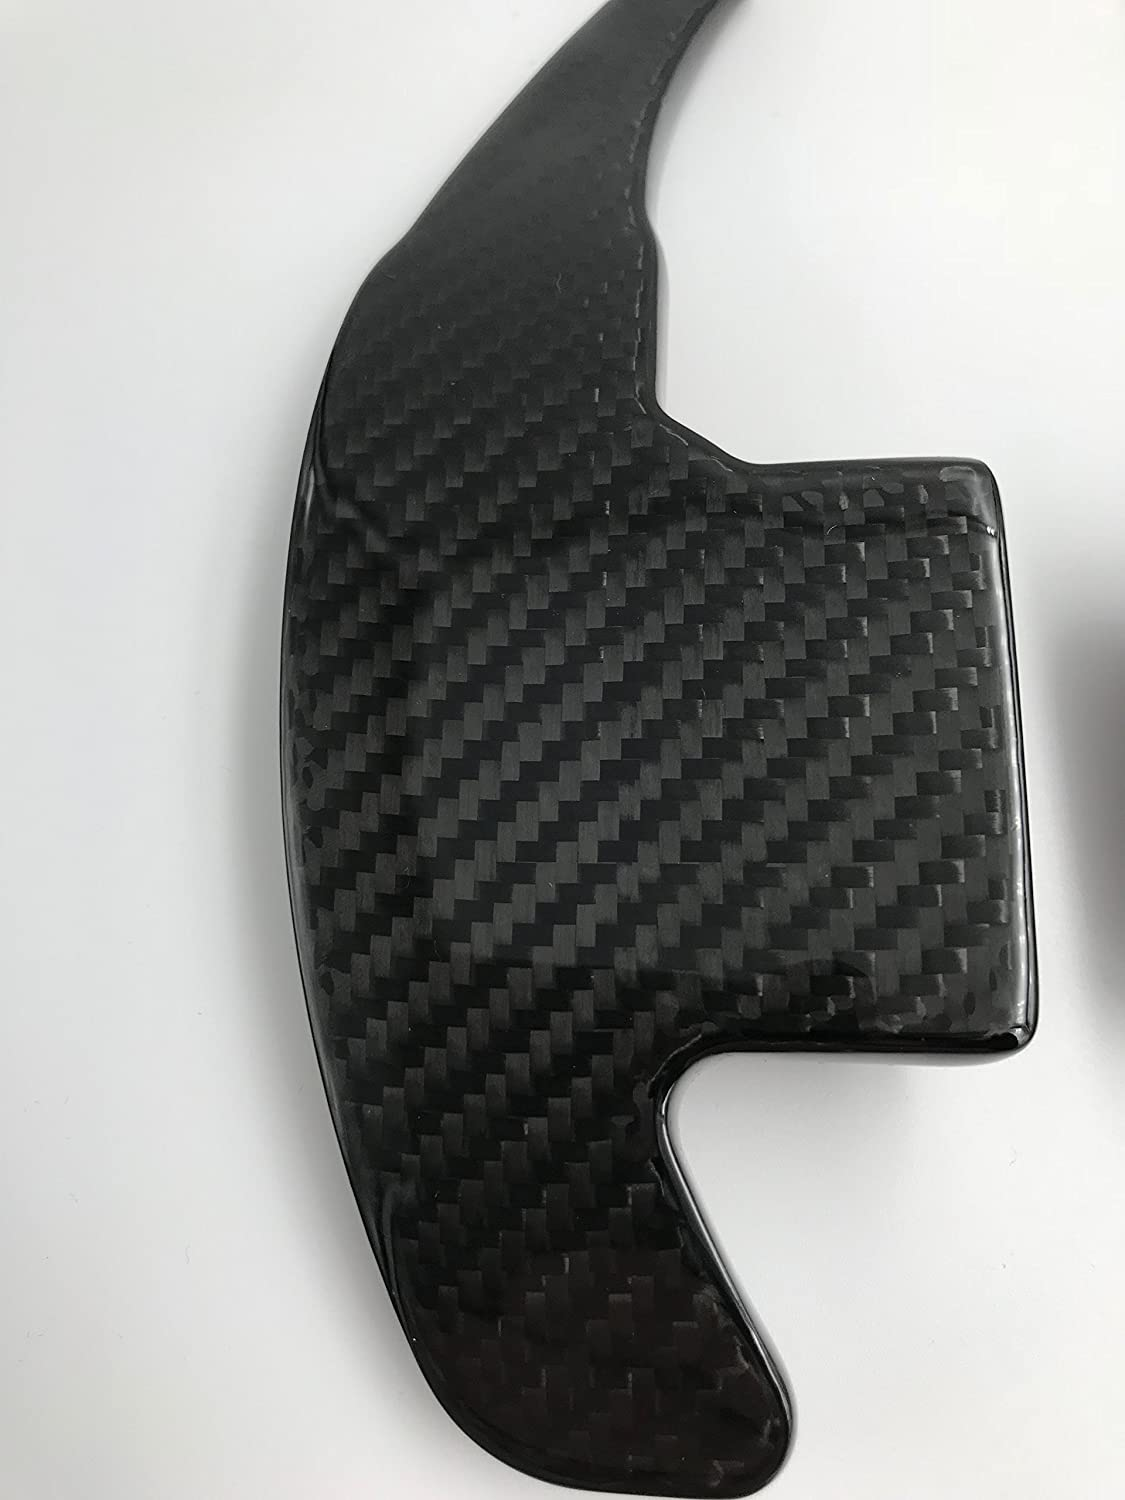 H customs schaltwippen dsg shift paddle aus echtem carbon 2015 2018 für mustang amazon de auto